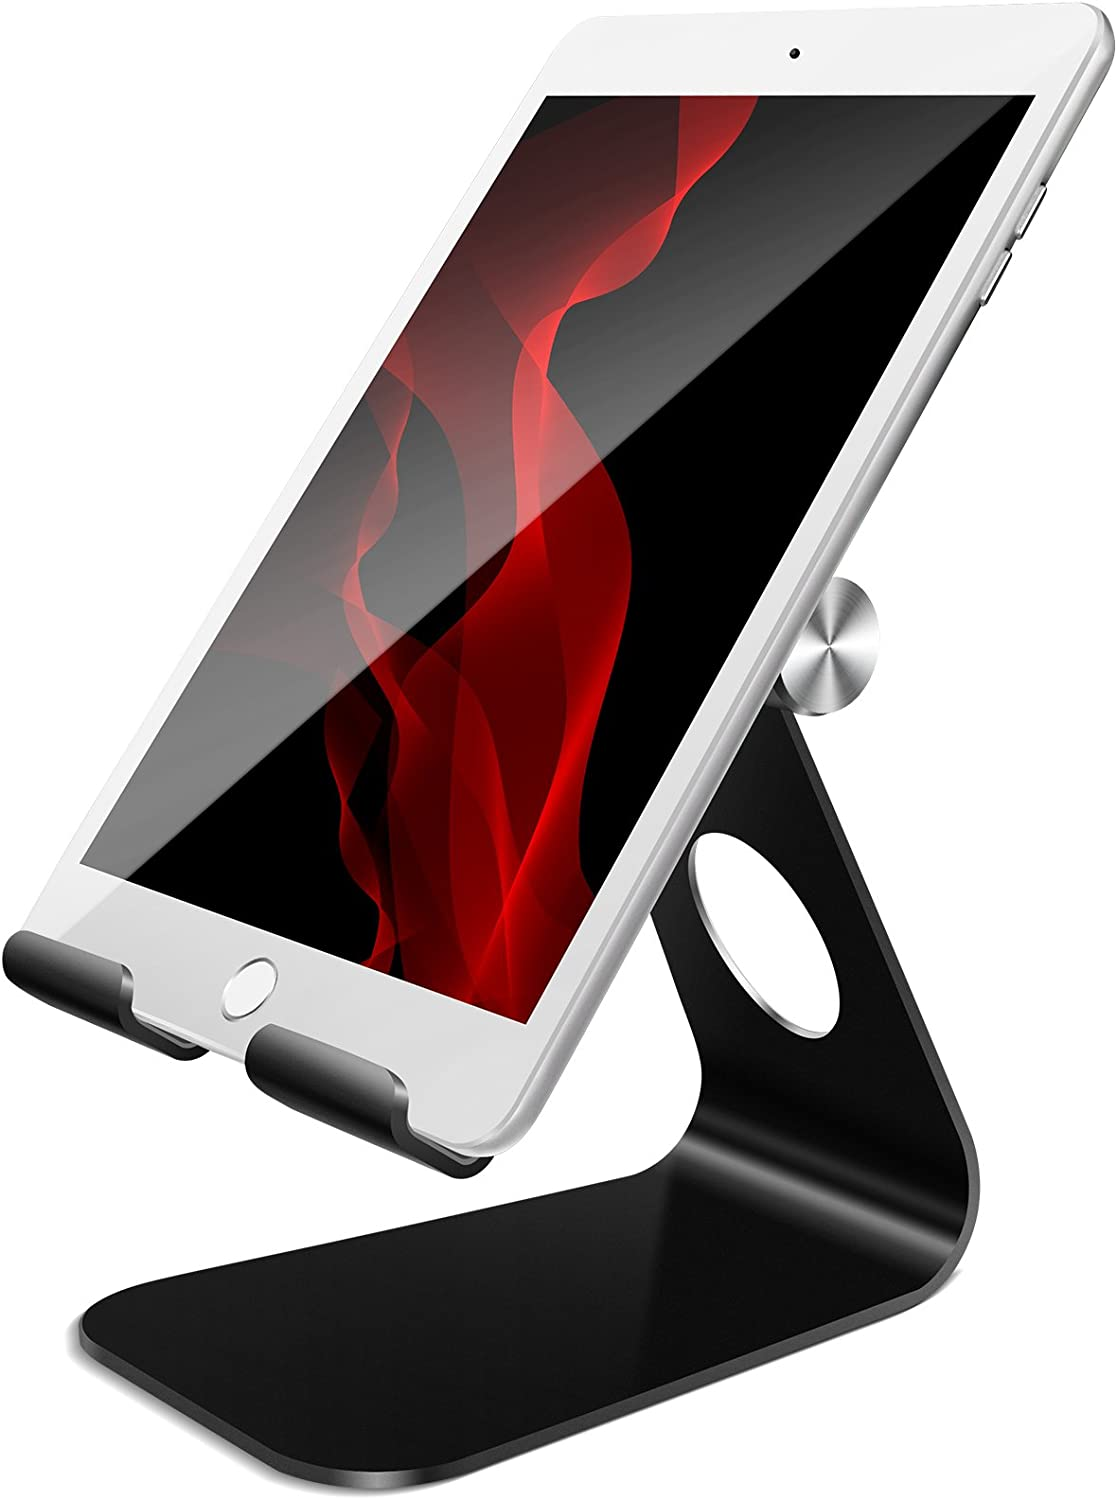 Tablet Stand Adjustable, Lamicall Phone Stand : Desktop Stand Holder Dock Compatible with Phone Xs Max XR, New iPad 2018 Pro 9.7, 10.5, Air Mini 2 3 4, Samsung Galaxy Tab S5 (4-13 inch) - Black